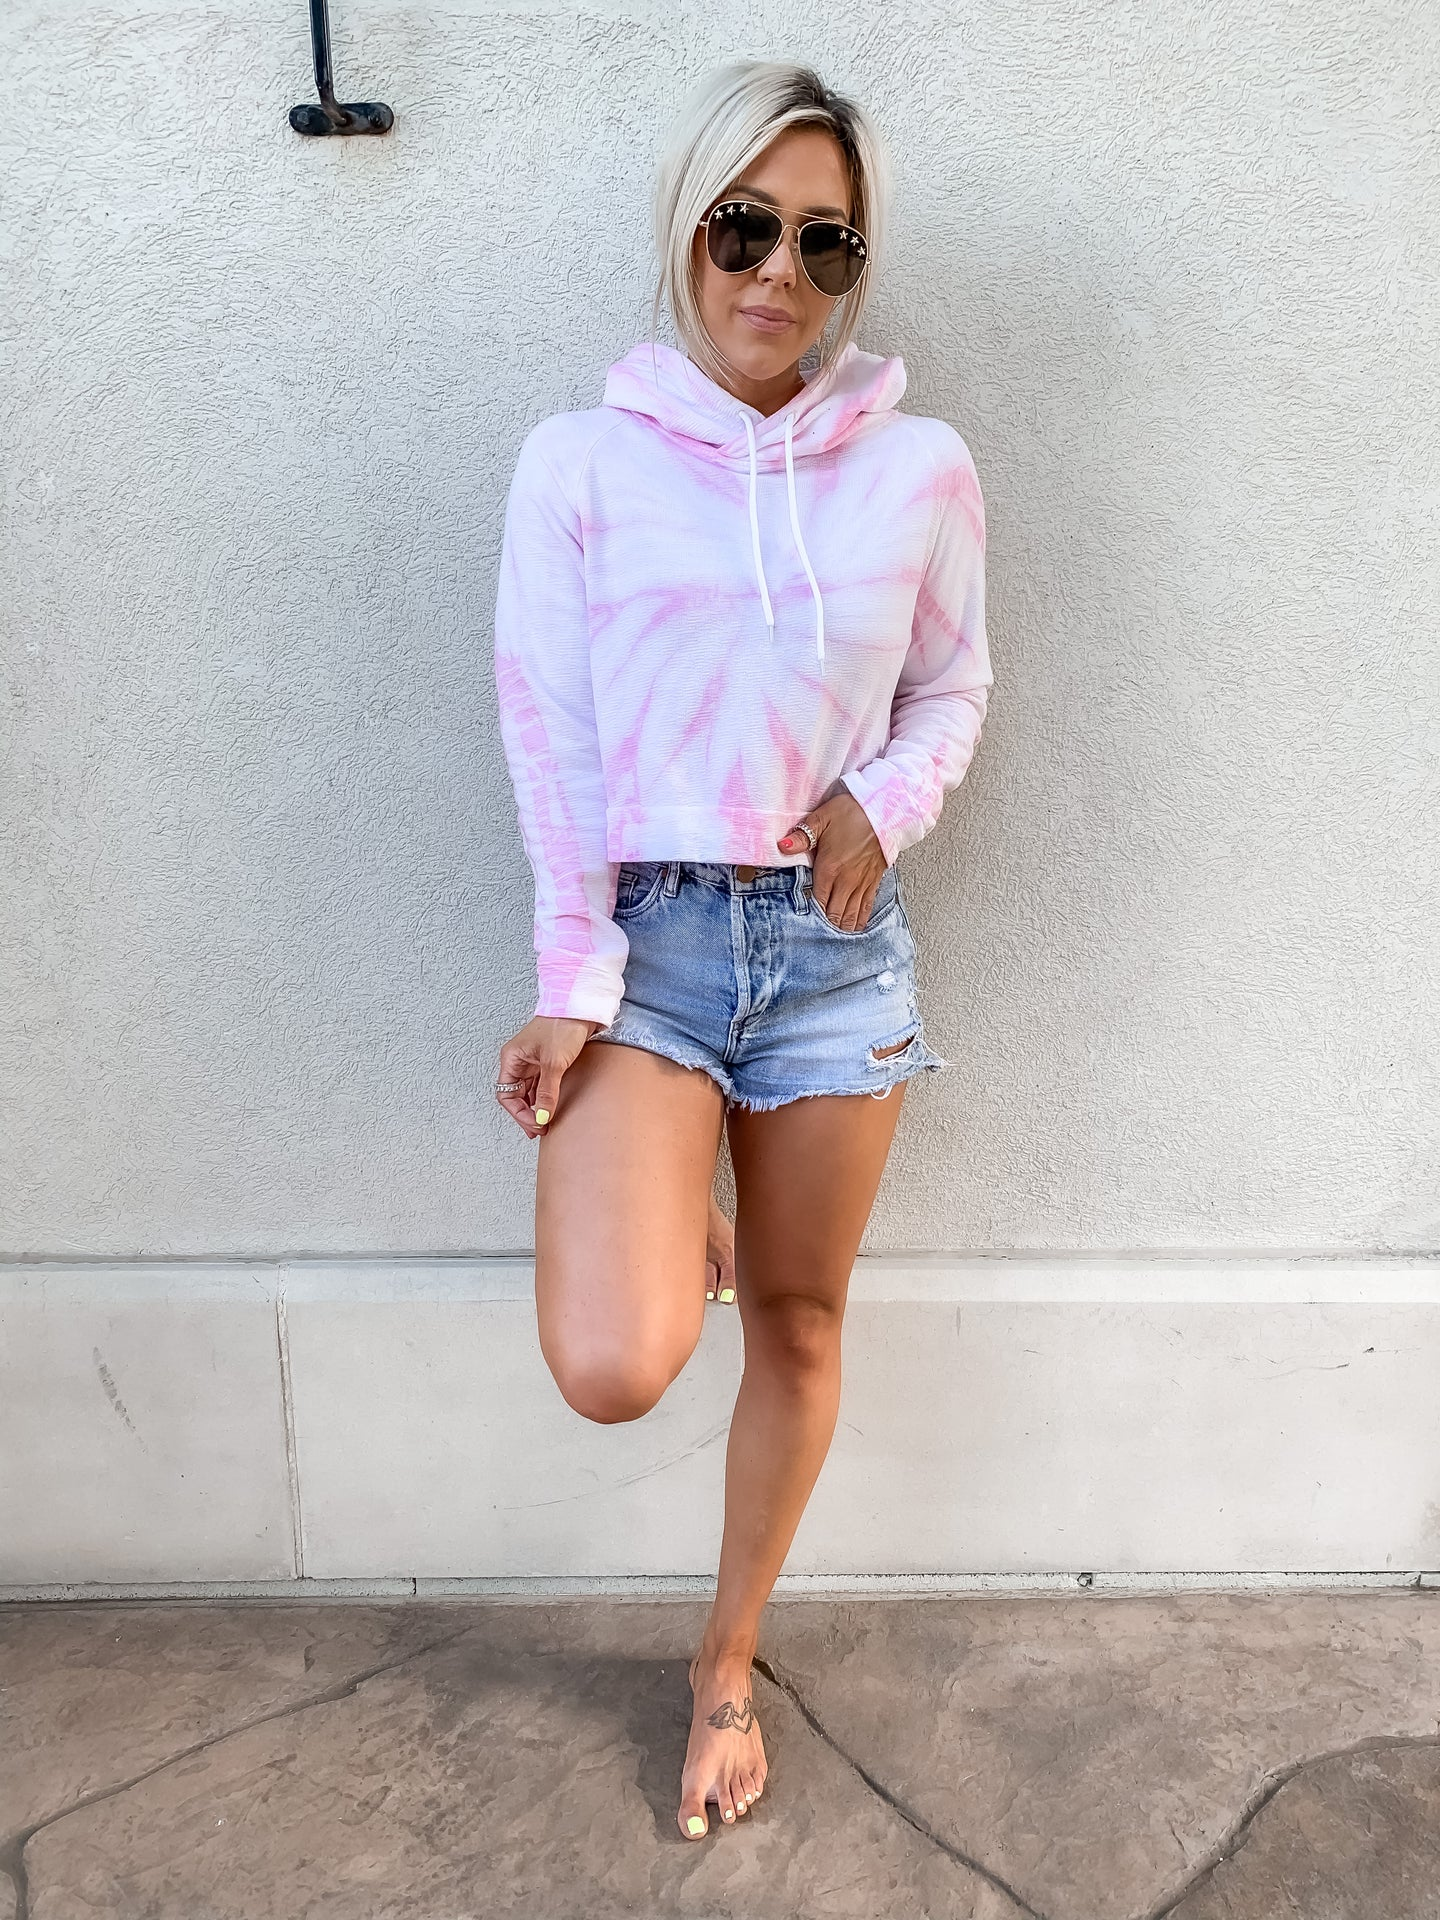 STRAWBERRY DREAMS TIE DYE LOUNGE HOODIE